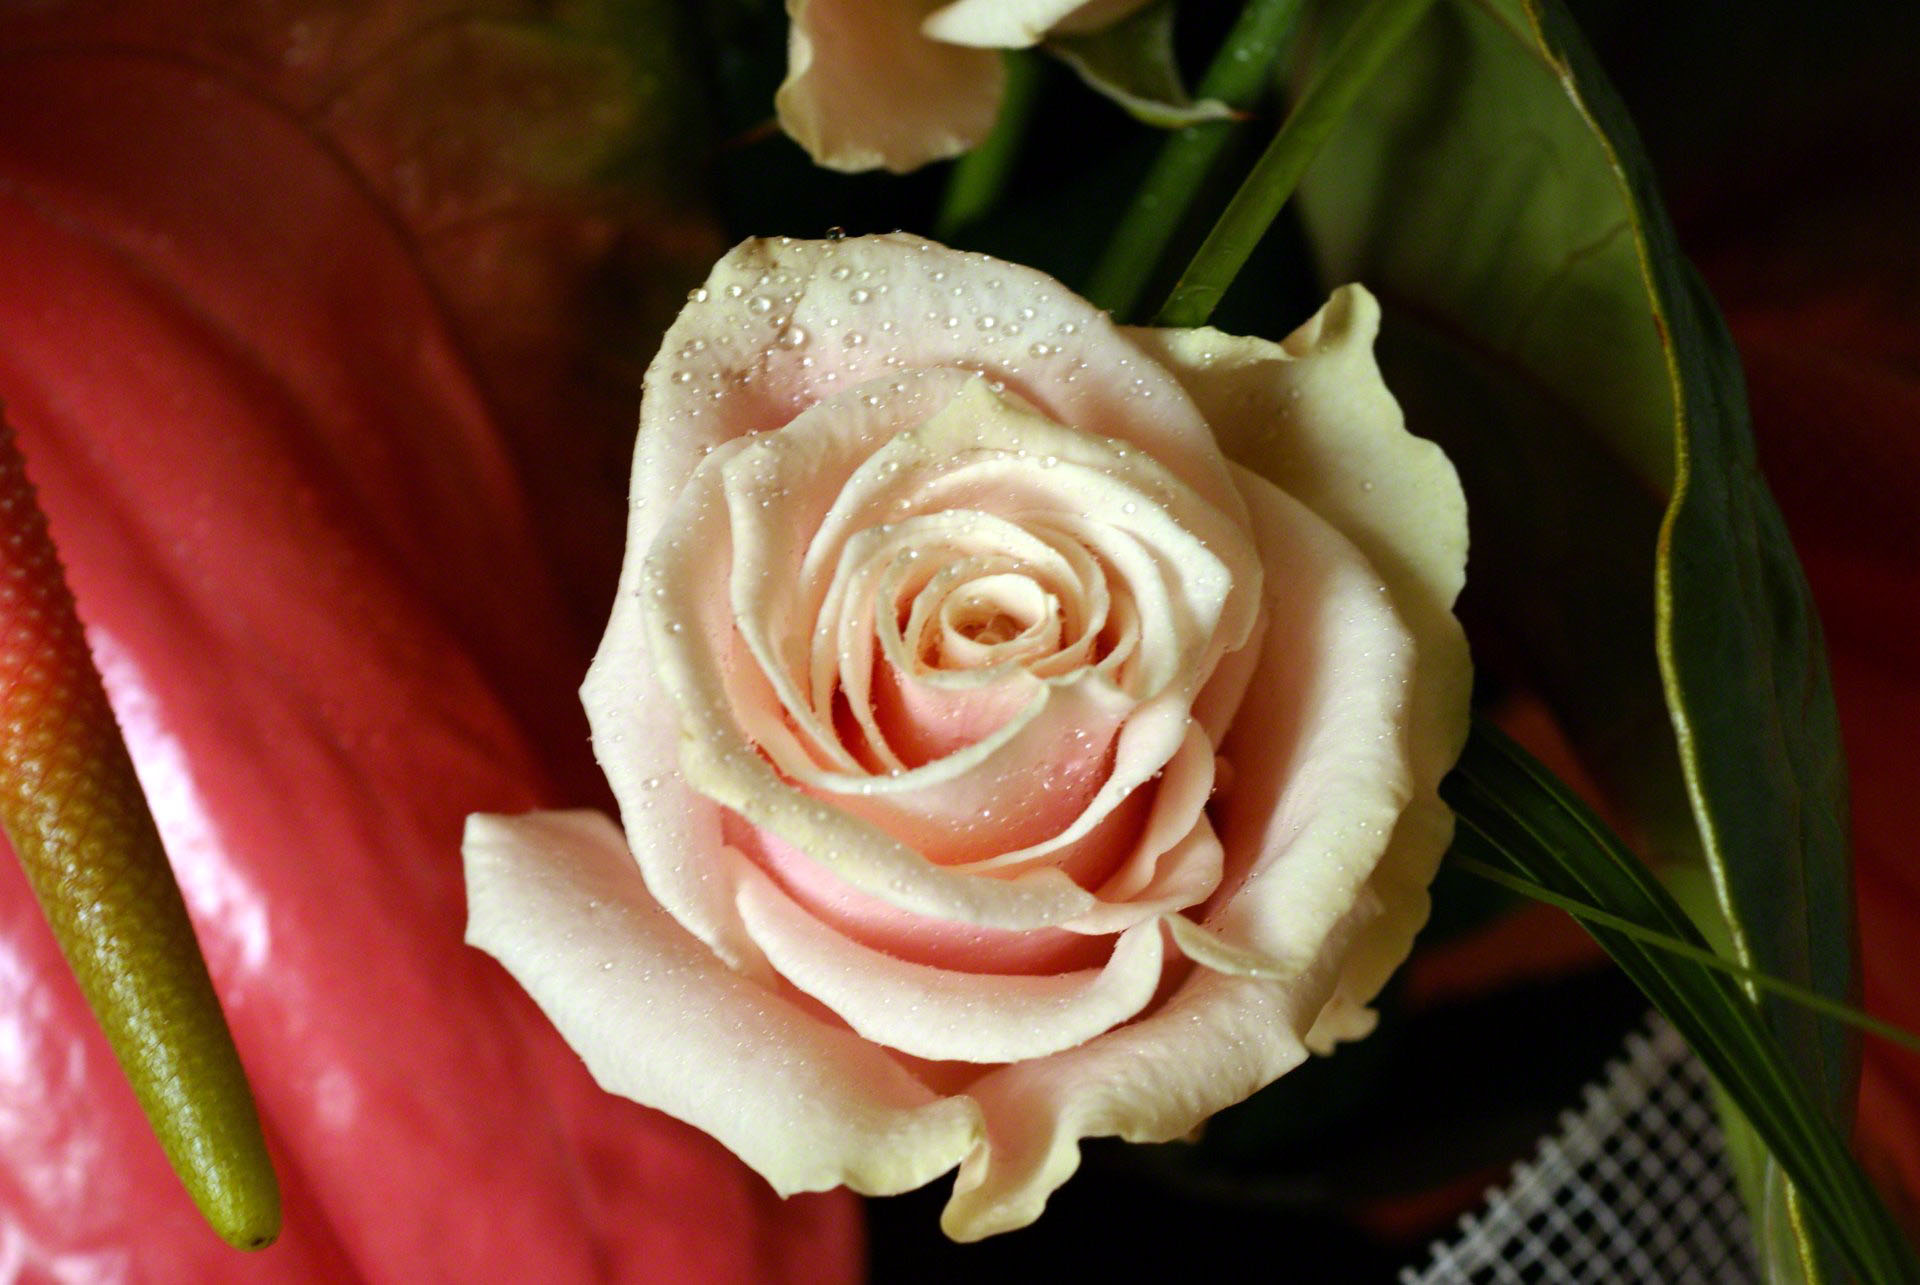 http://www.fabiovisentin.com/photography/photo/12/peach-rose-00856.jpg